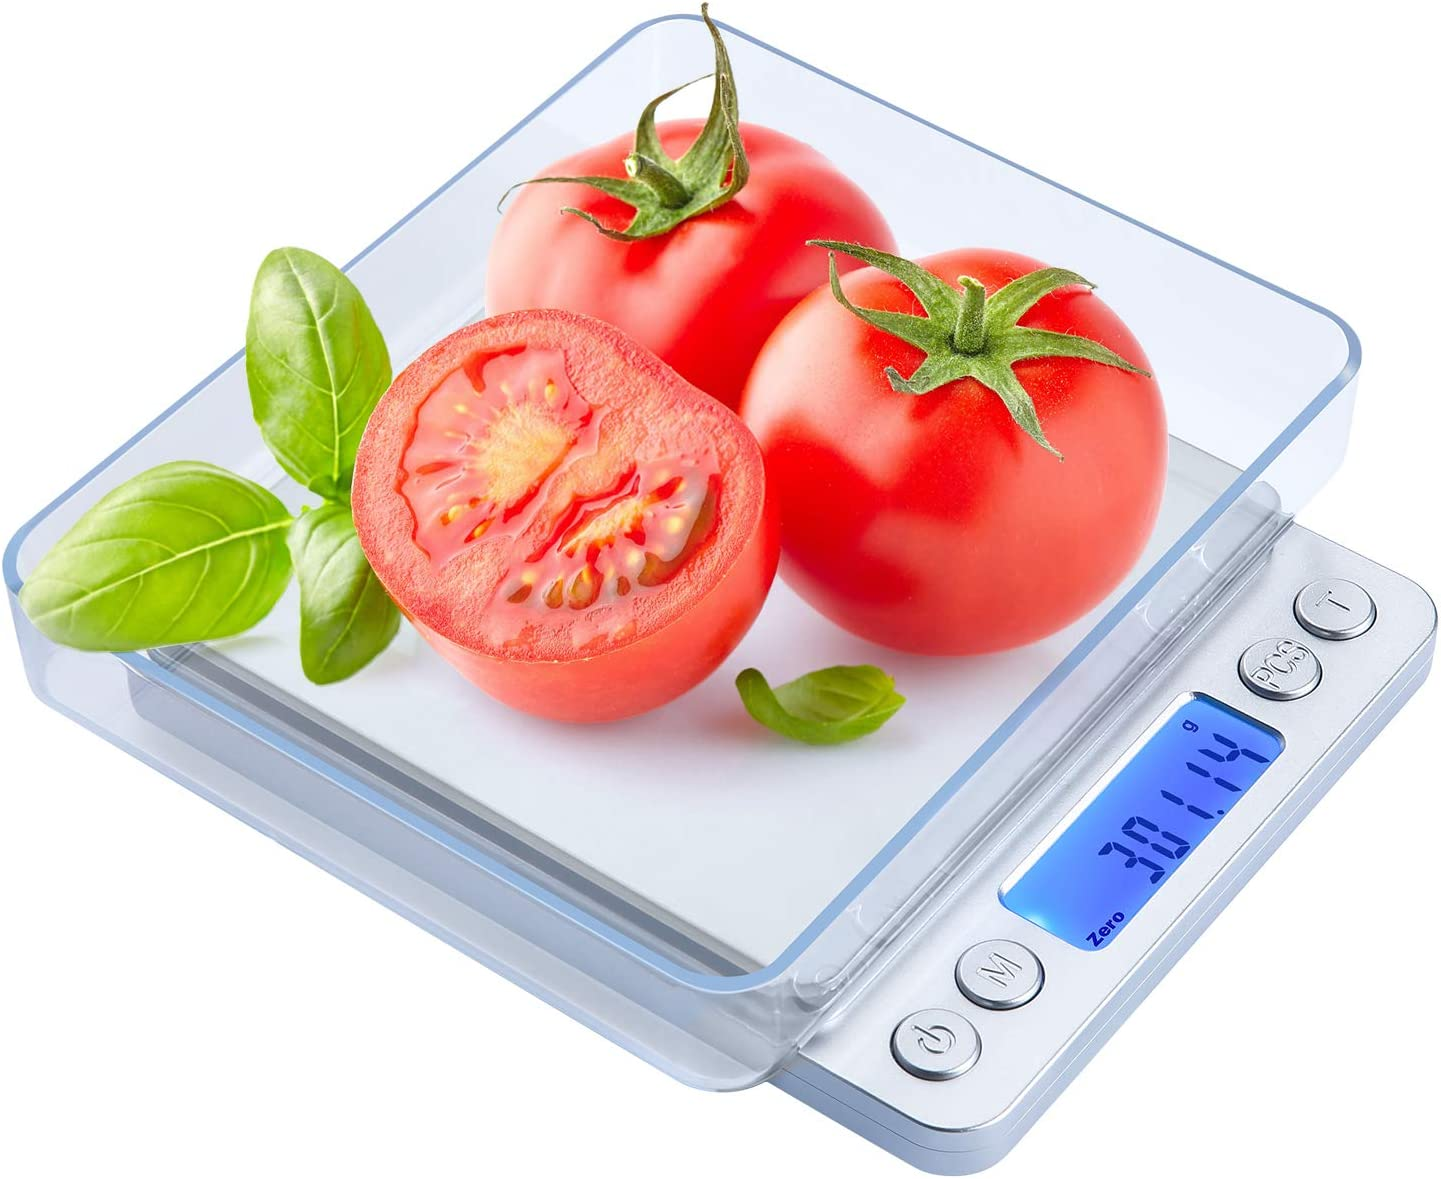 Digital Kitchen Scale, 500g/0.01g Cooking Food Scale with LCD Display, 2 Trays, 6 Units, Auto Off, Tare, PCS Function, Stainless Steel, Battery Included